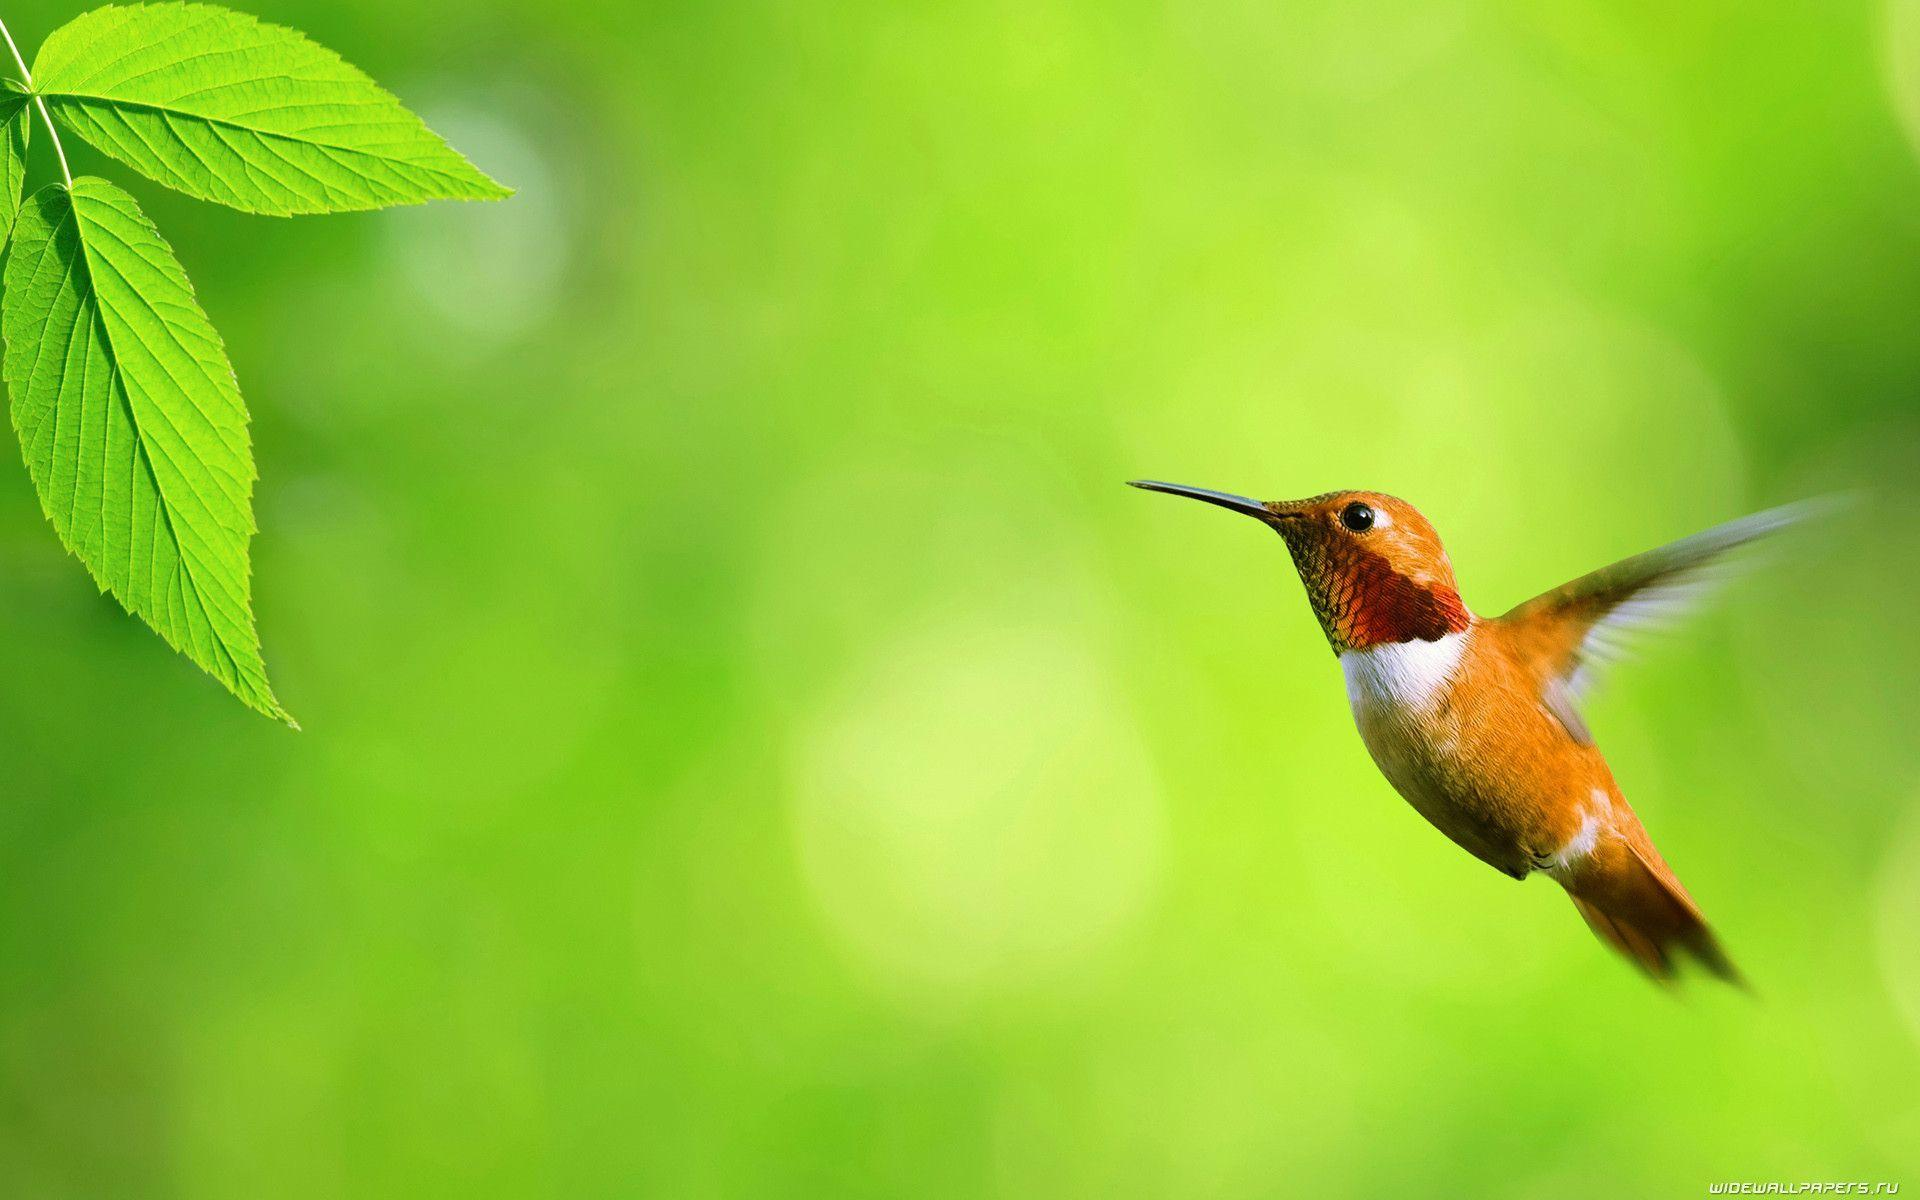 A selection of 10 Image of Birds in HD quality